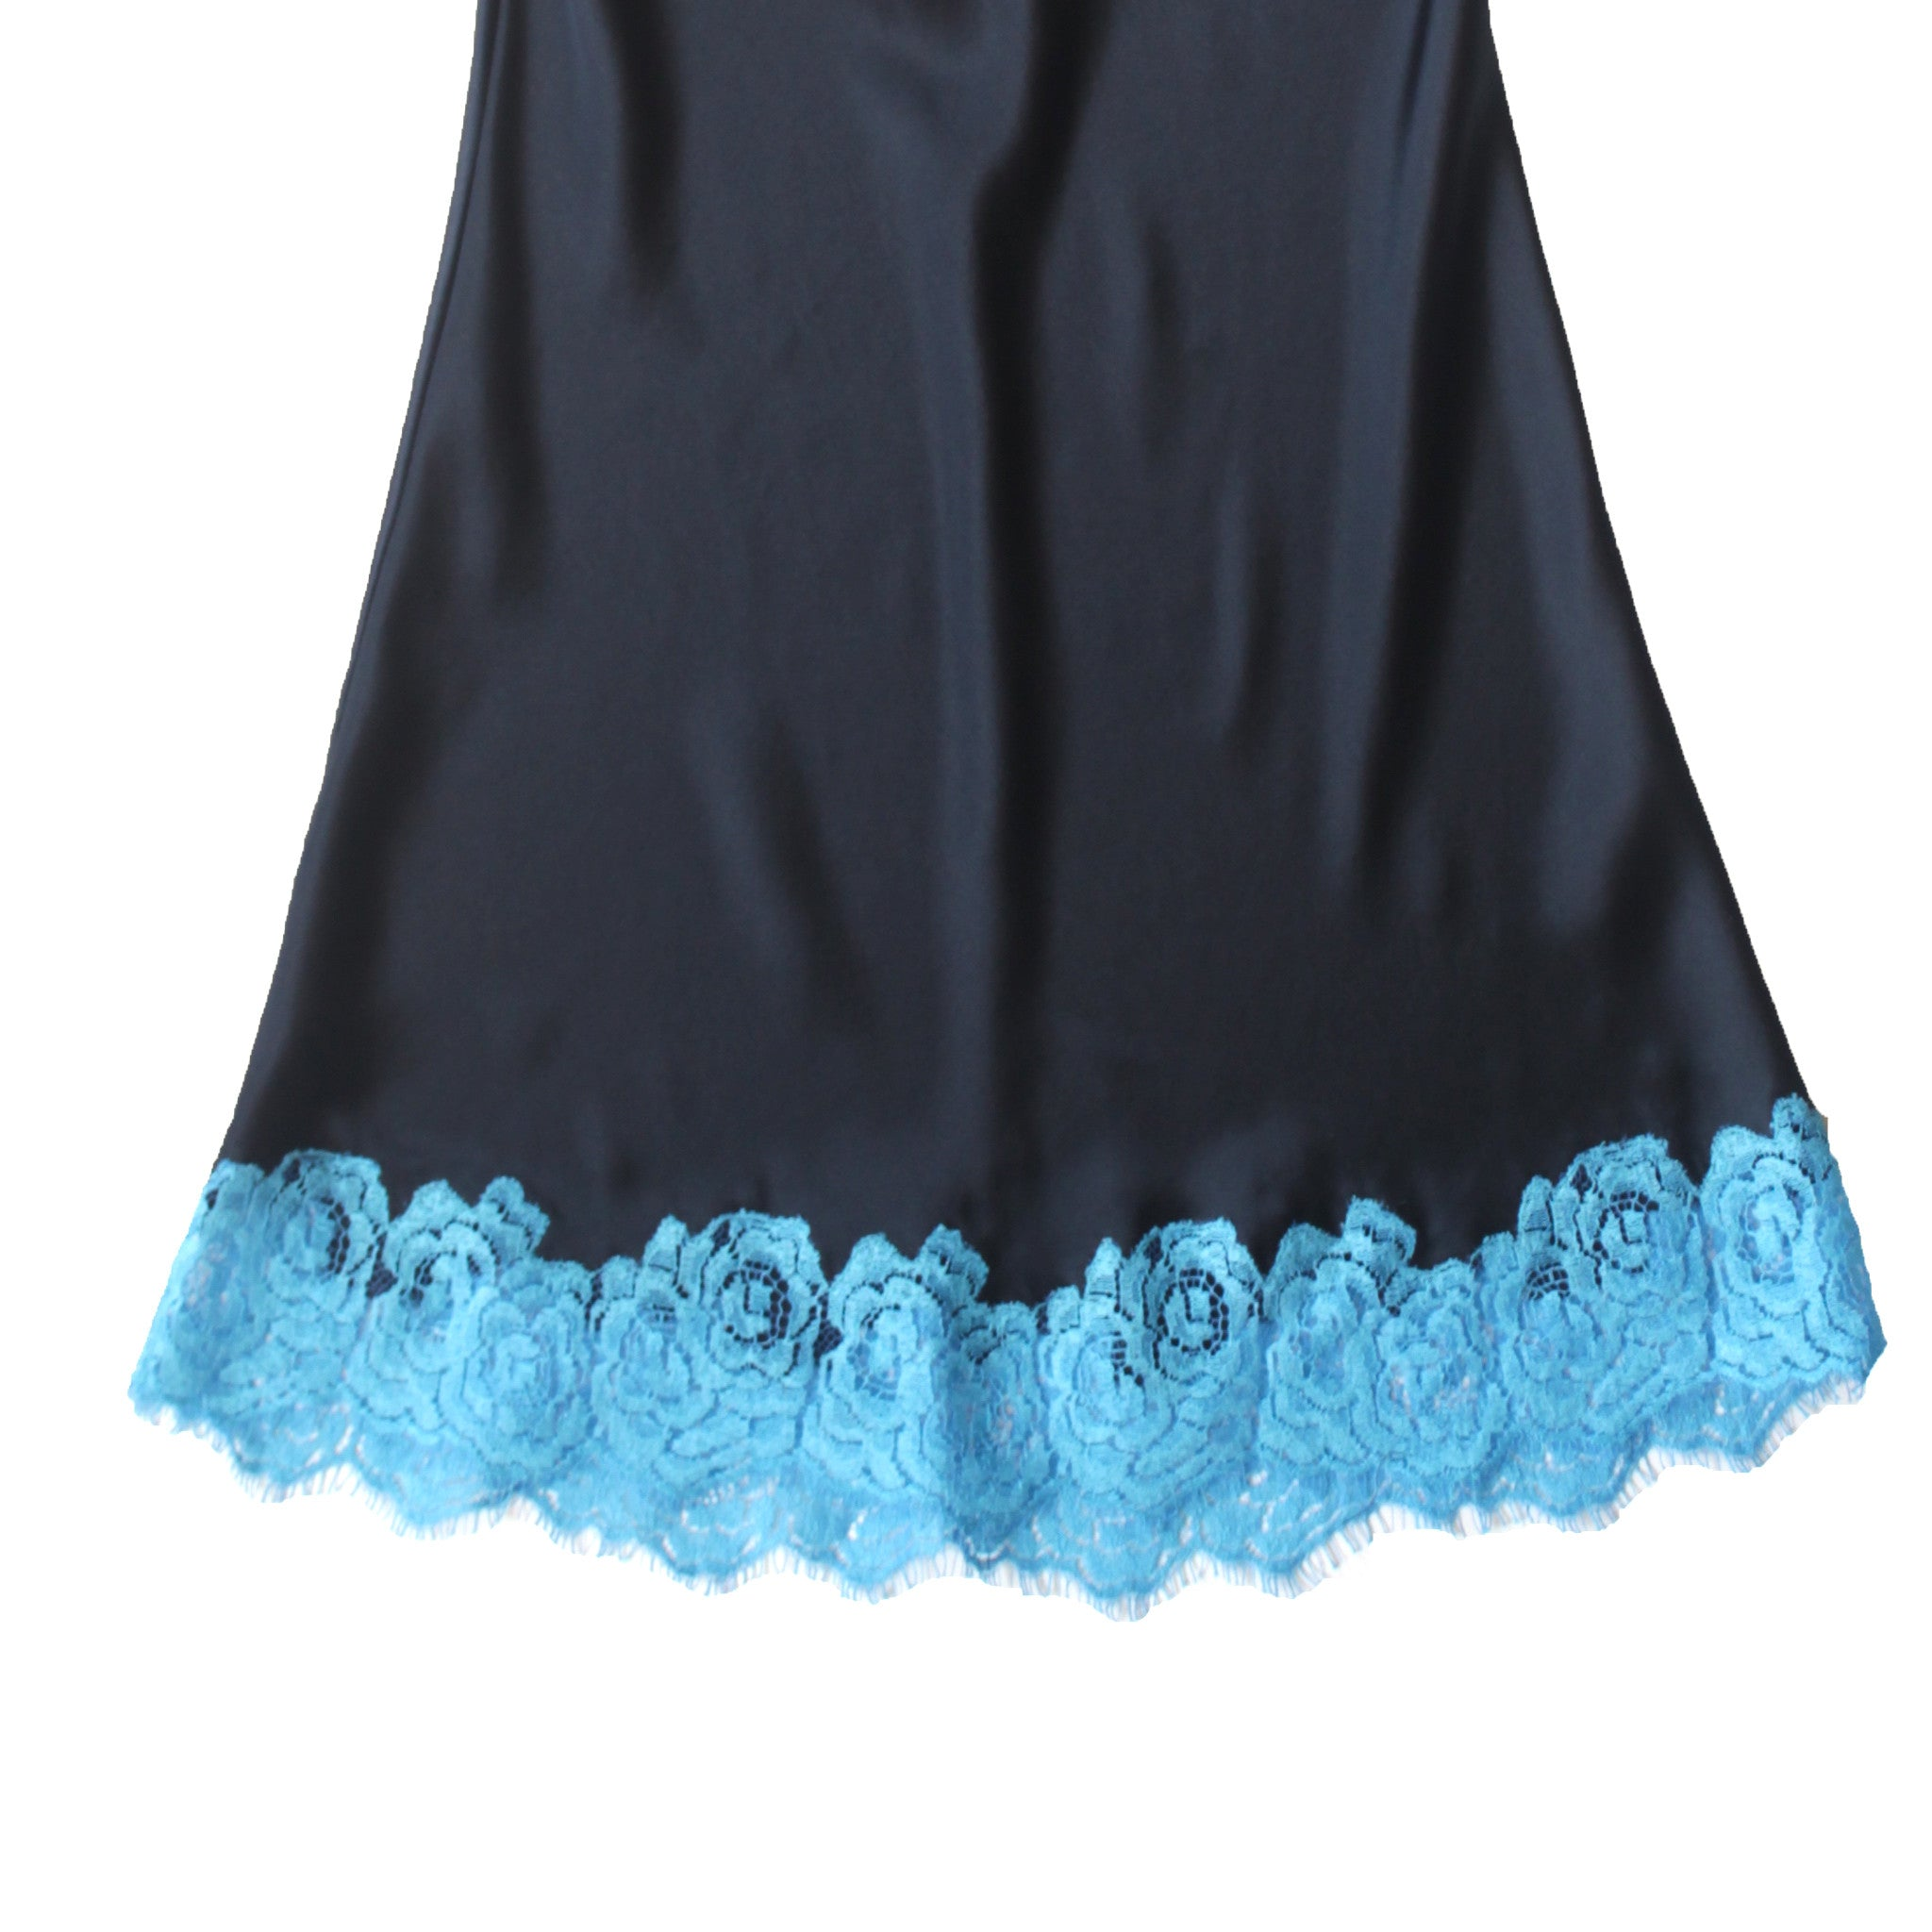 Venus Slip in Sapphire Silk Charmeuse with Turquoise Lace